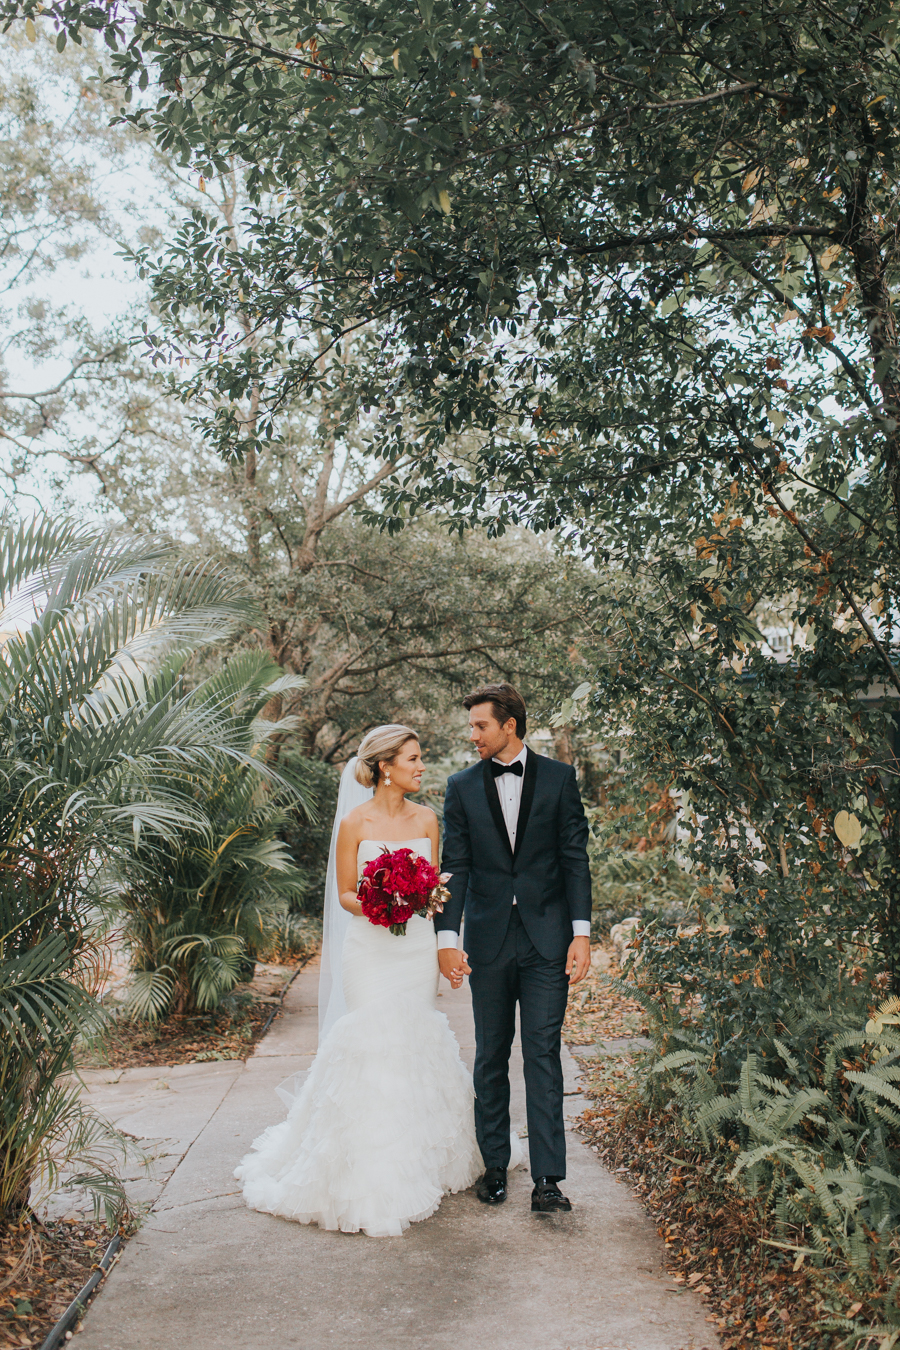 Loren and Alex Kuznetsov Gold and Burgundy wedding at Epicurean Tampa Royal Fall Wedding in Tampa Florida Inside Weddings MD Events Tampa-118.jpg